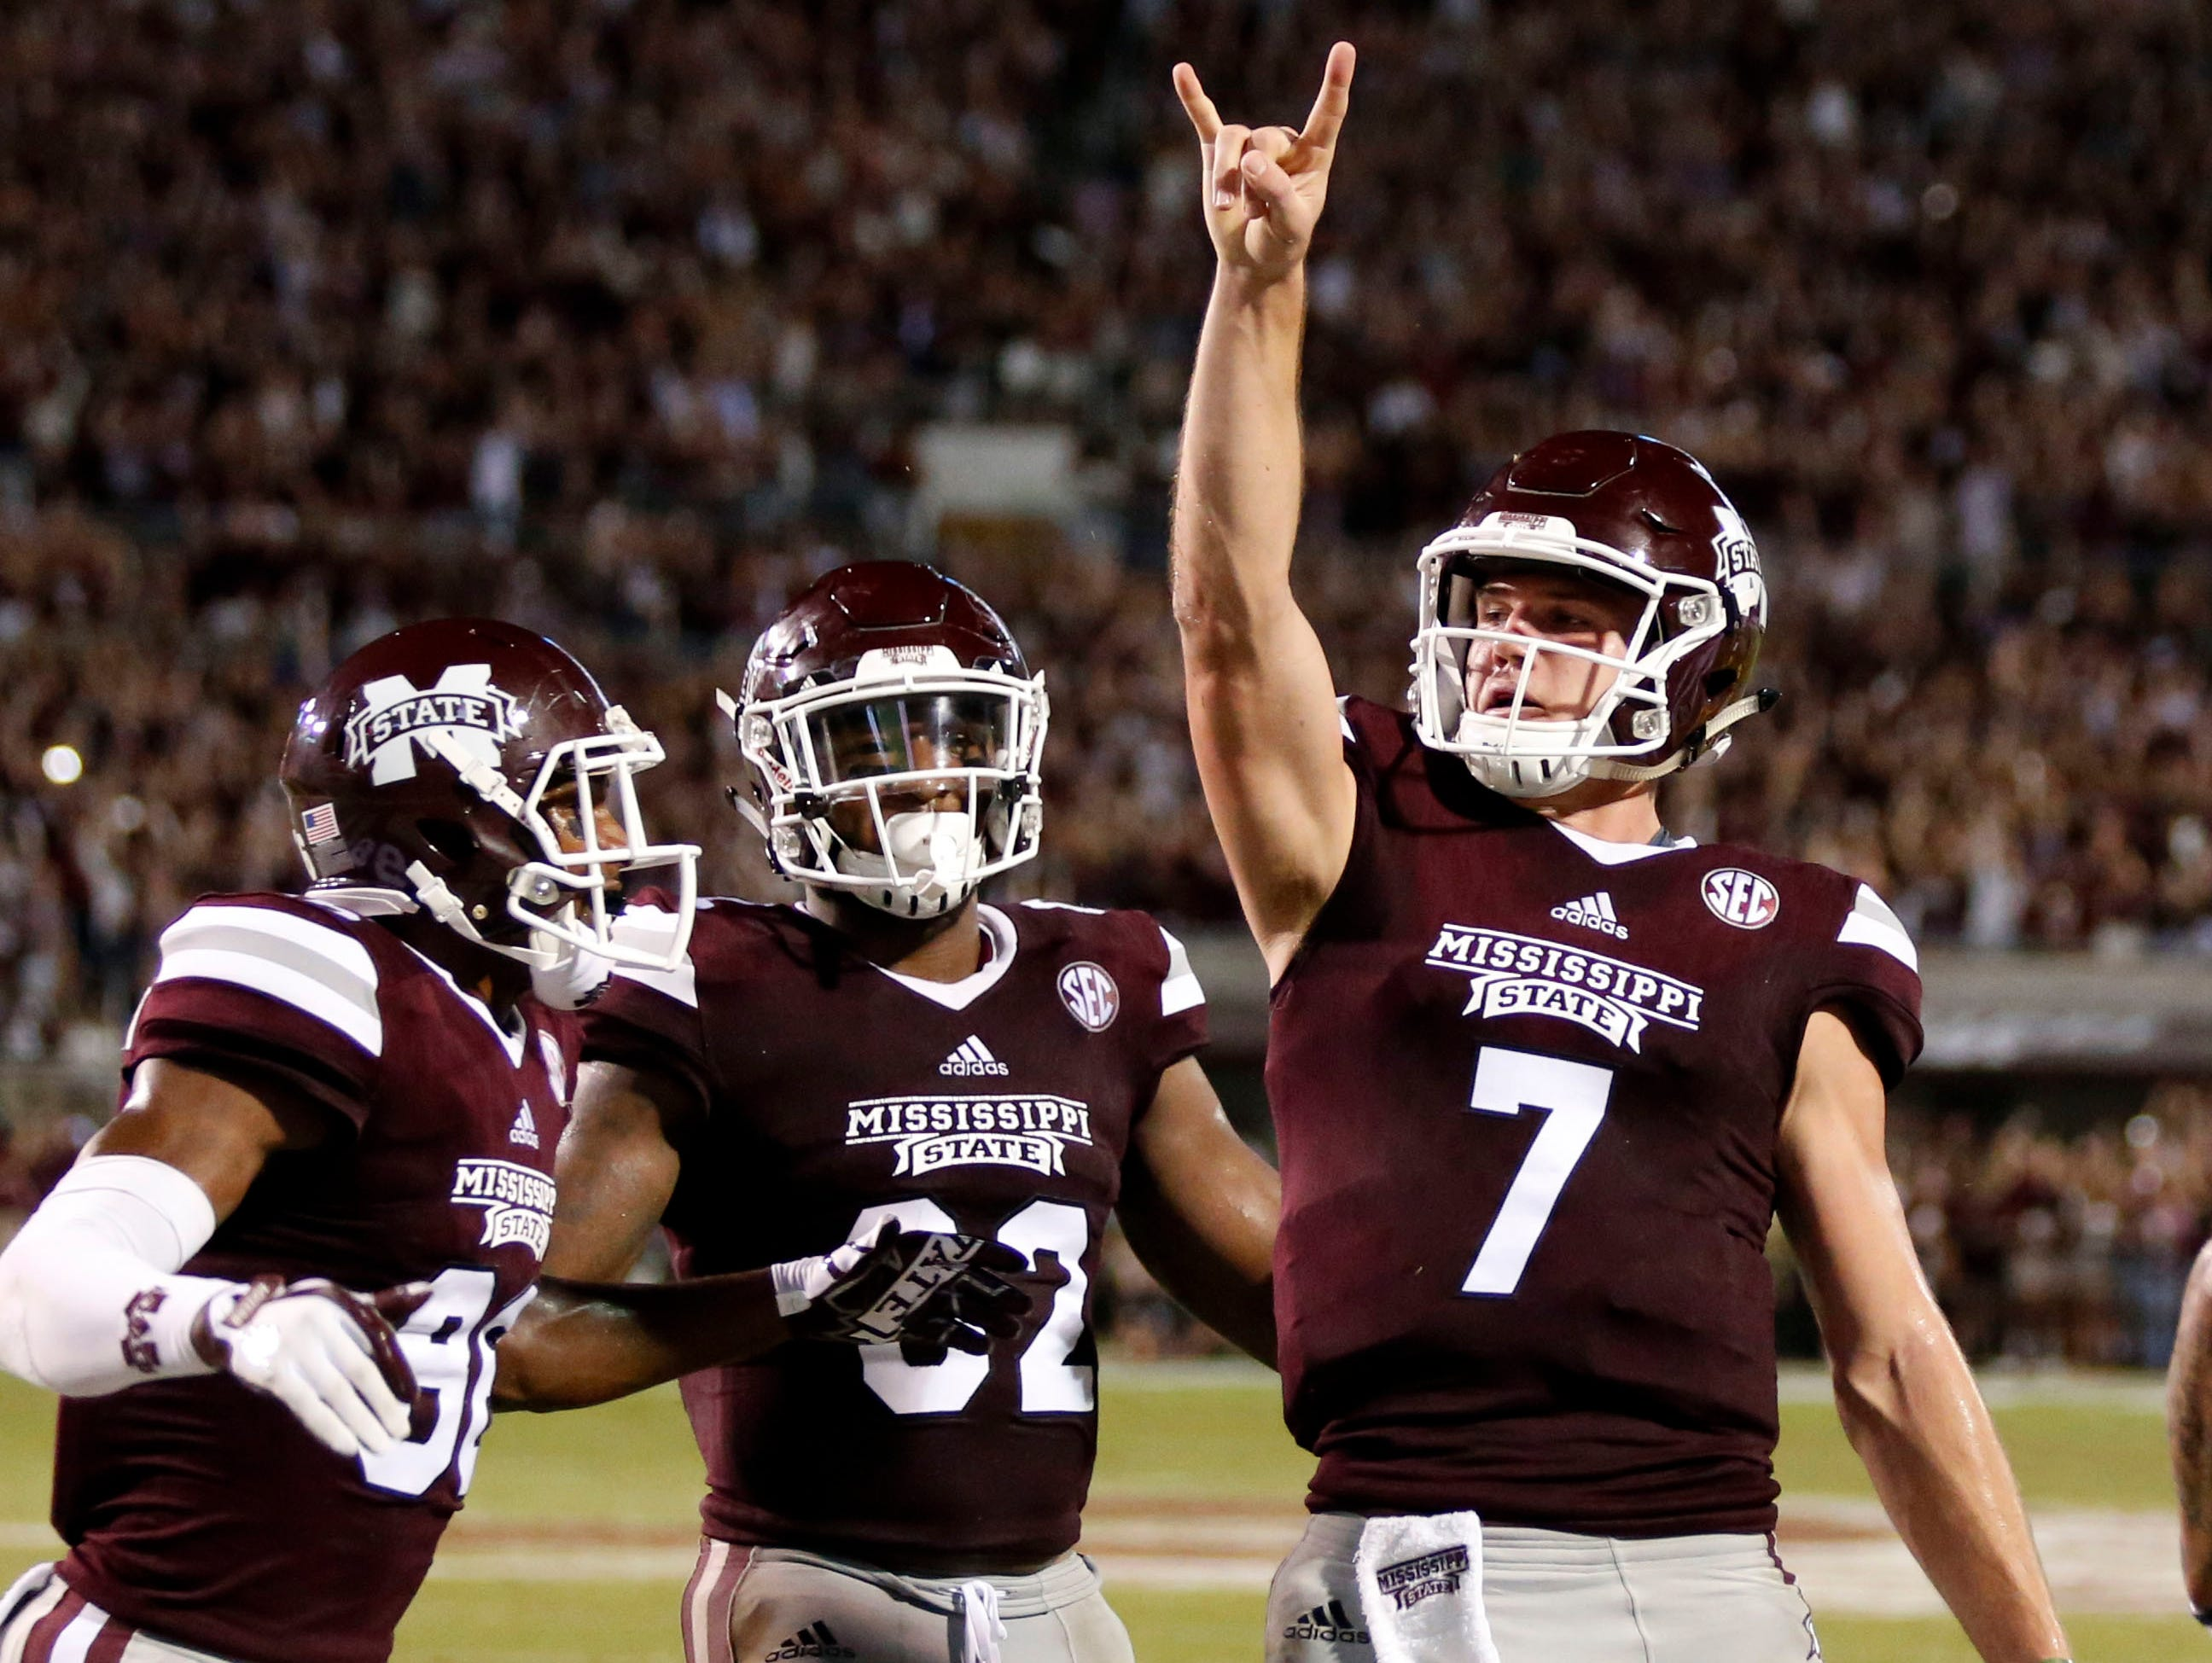 Mississippi State quarterback Nick Fitzgerald (7) celebrates his three-yard touchdown run against LSU during the first half of their NCAA college football game against in Starkville, Miss., Saturday, Sept. 16, 2017.